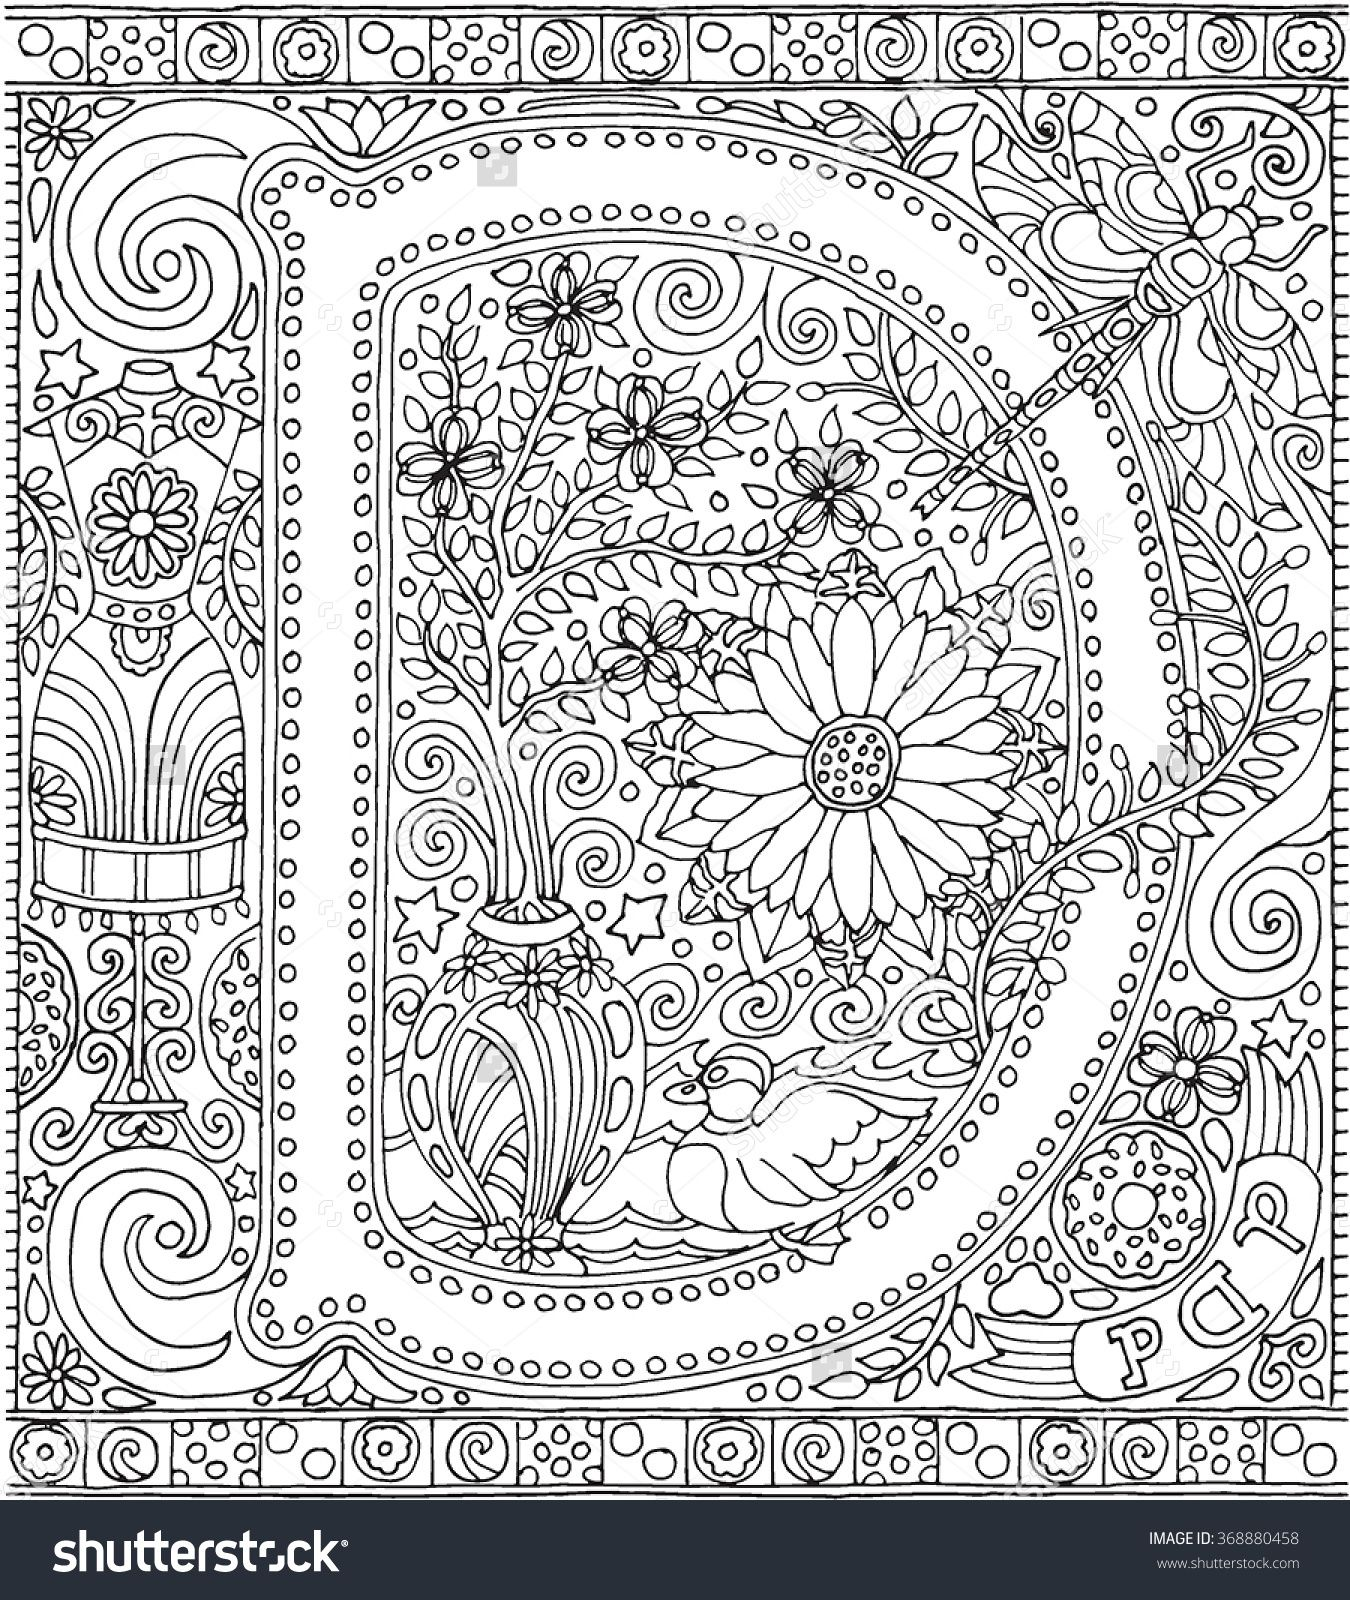 Coloring Pages For Adults Google Search Prints To Color